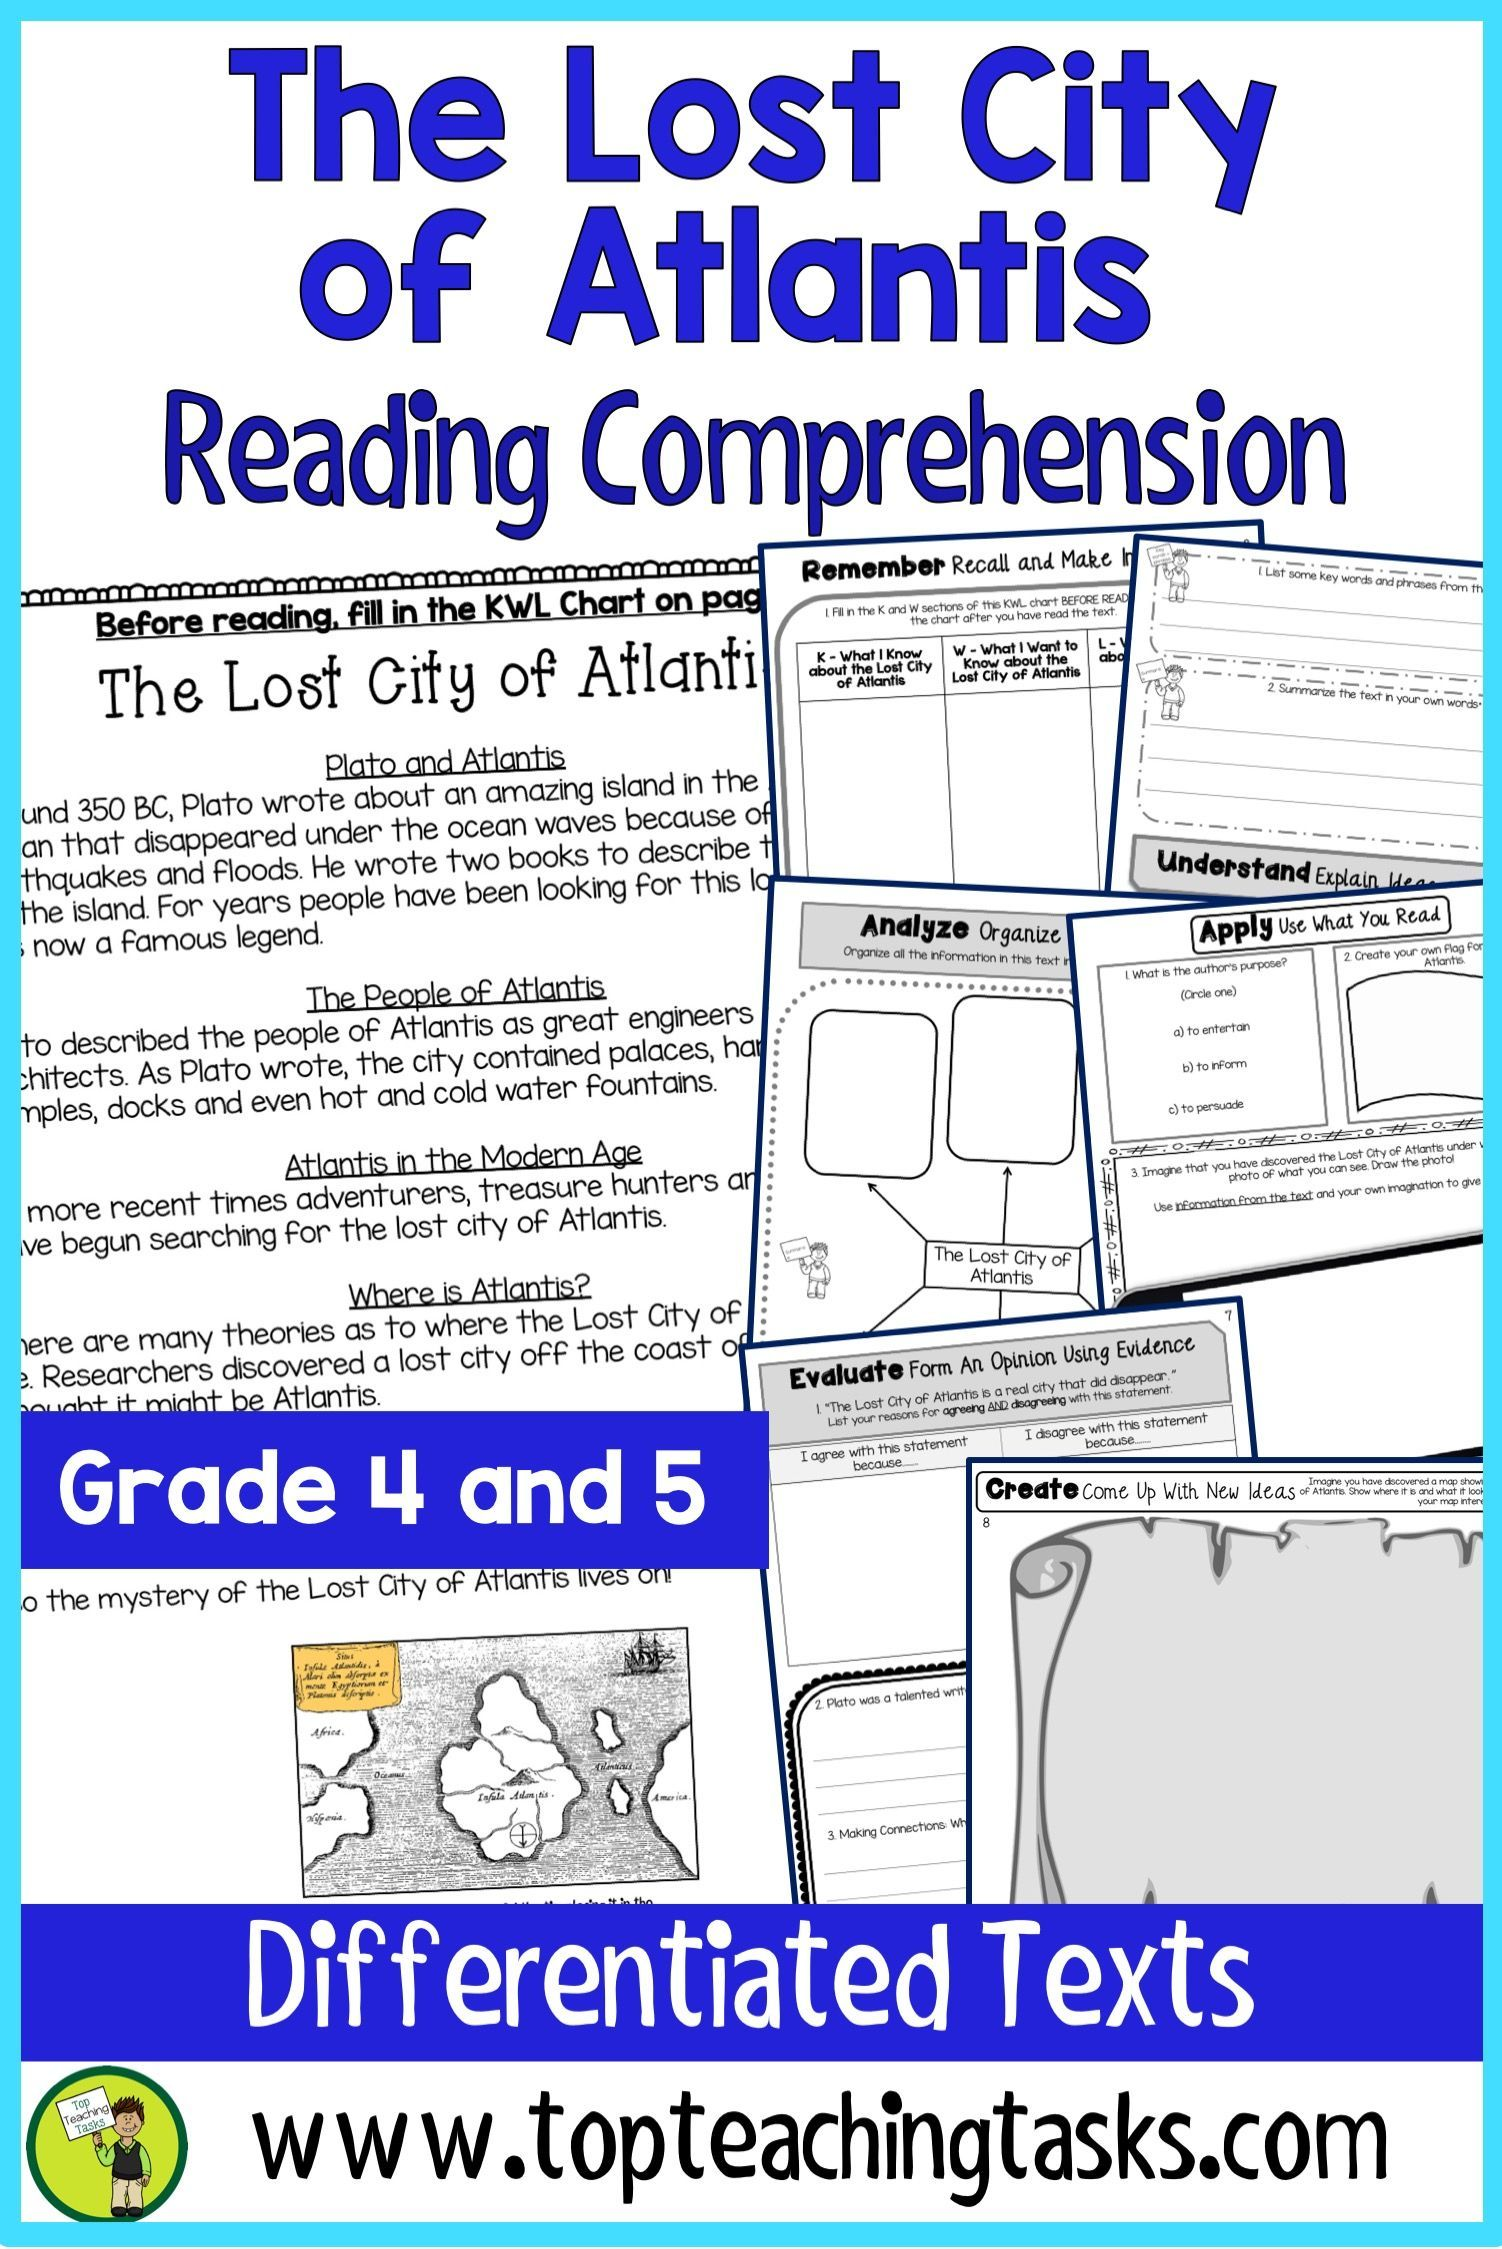 the lost city of atlantis reading comprehension passages and